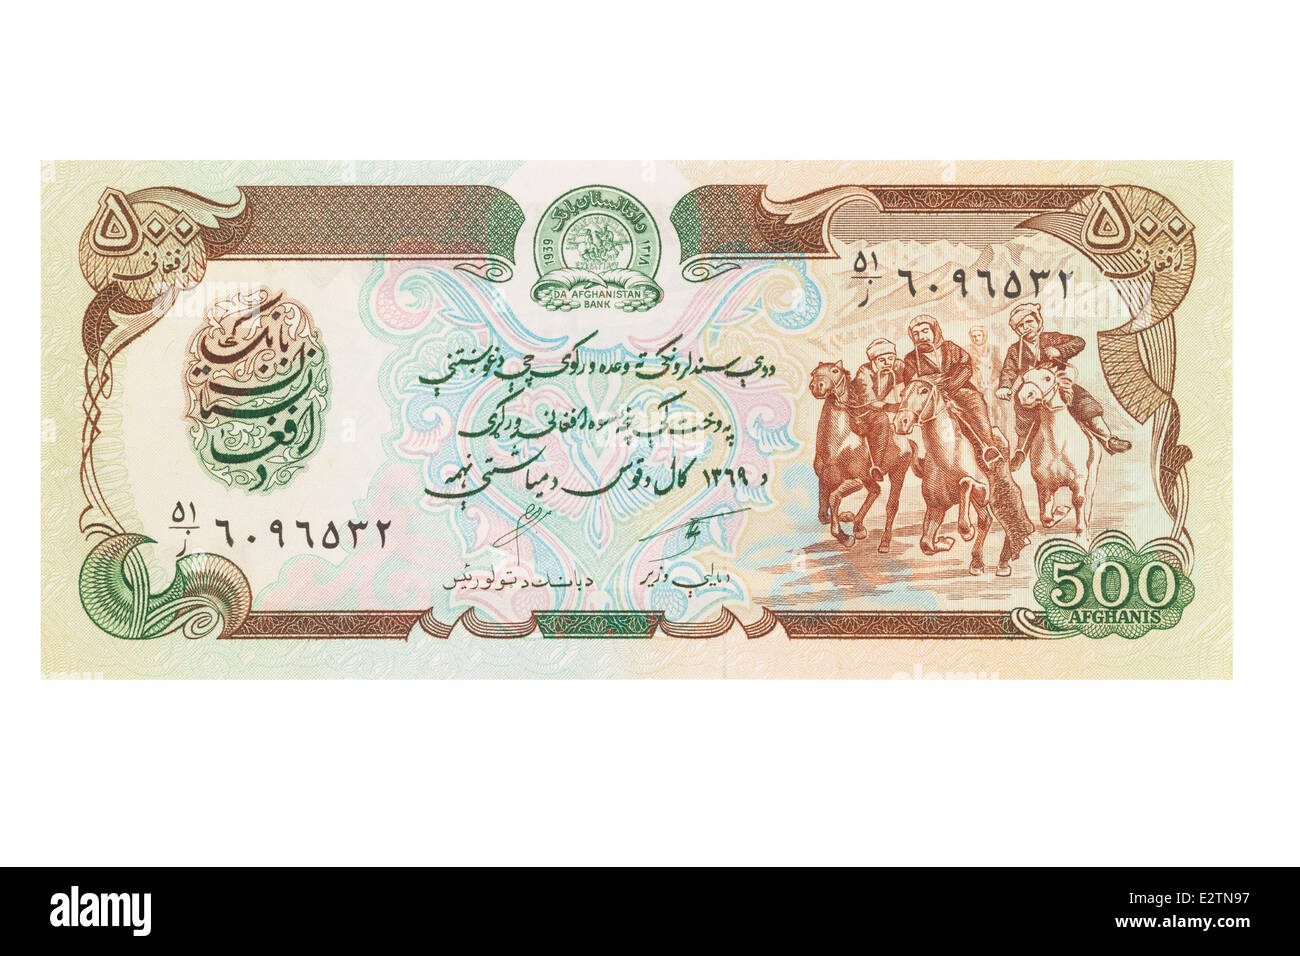 Afghan five hundred afghani banknote on a white background - Stock Image